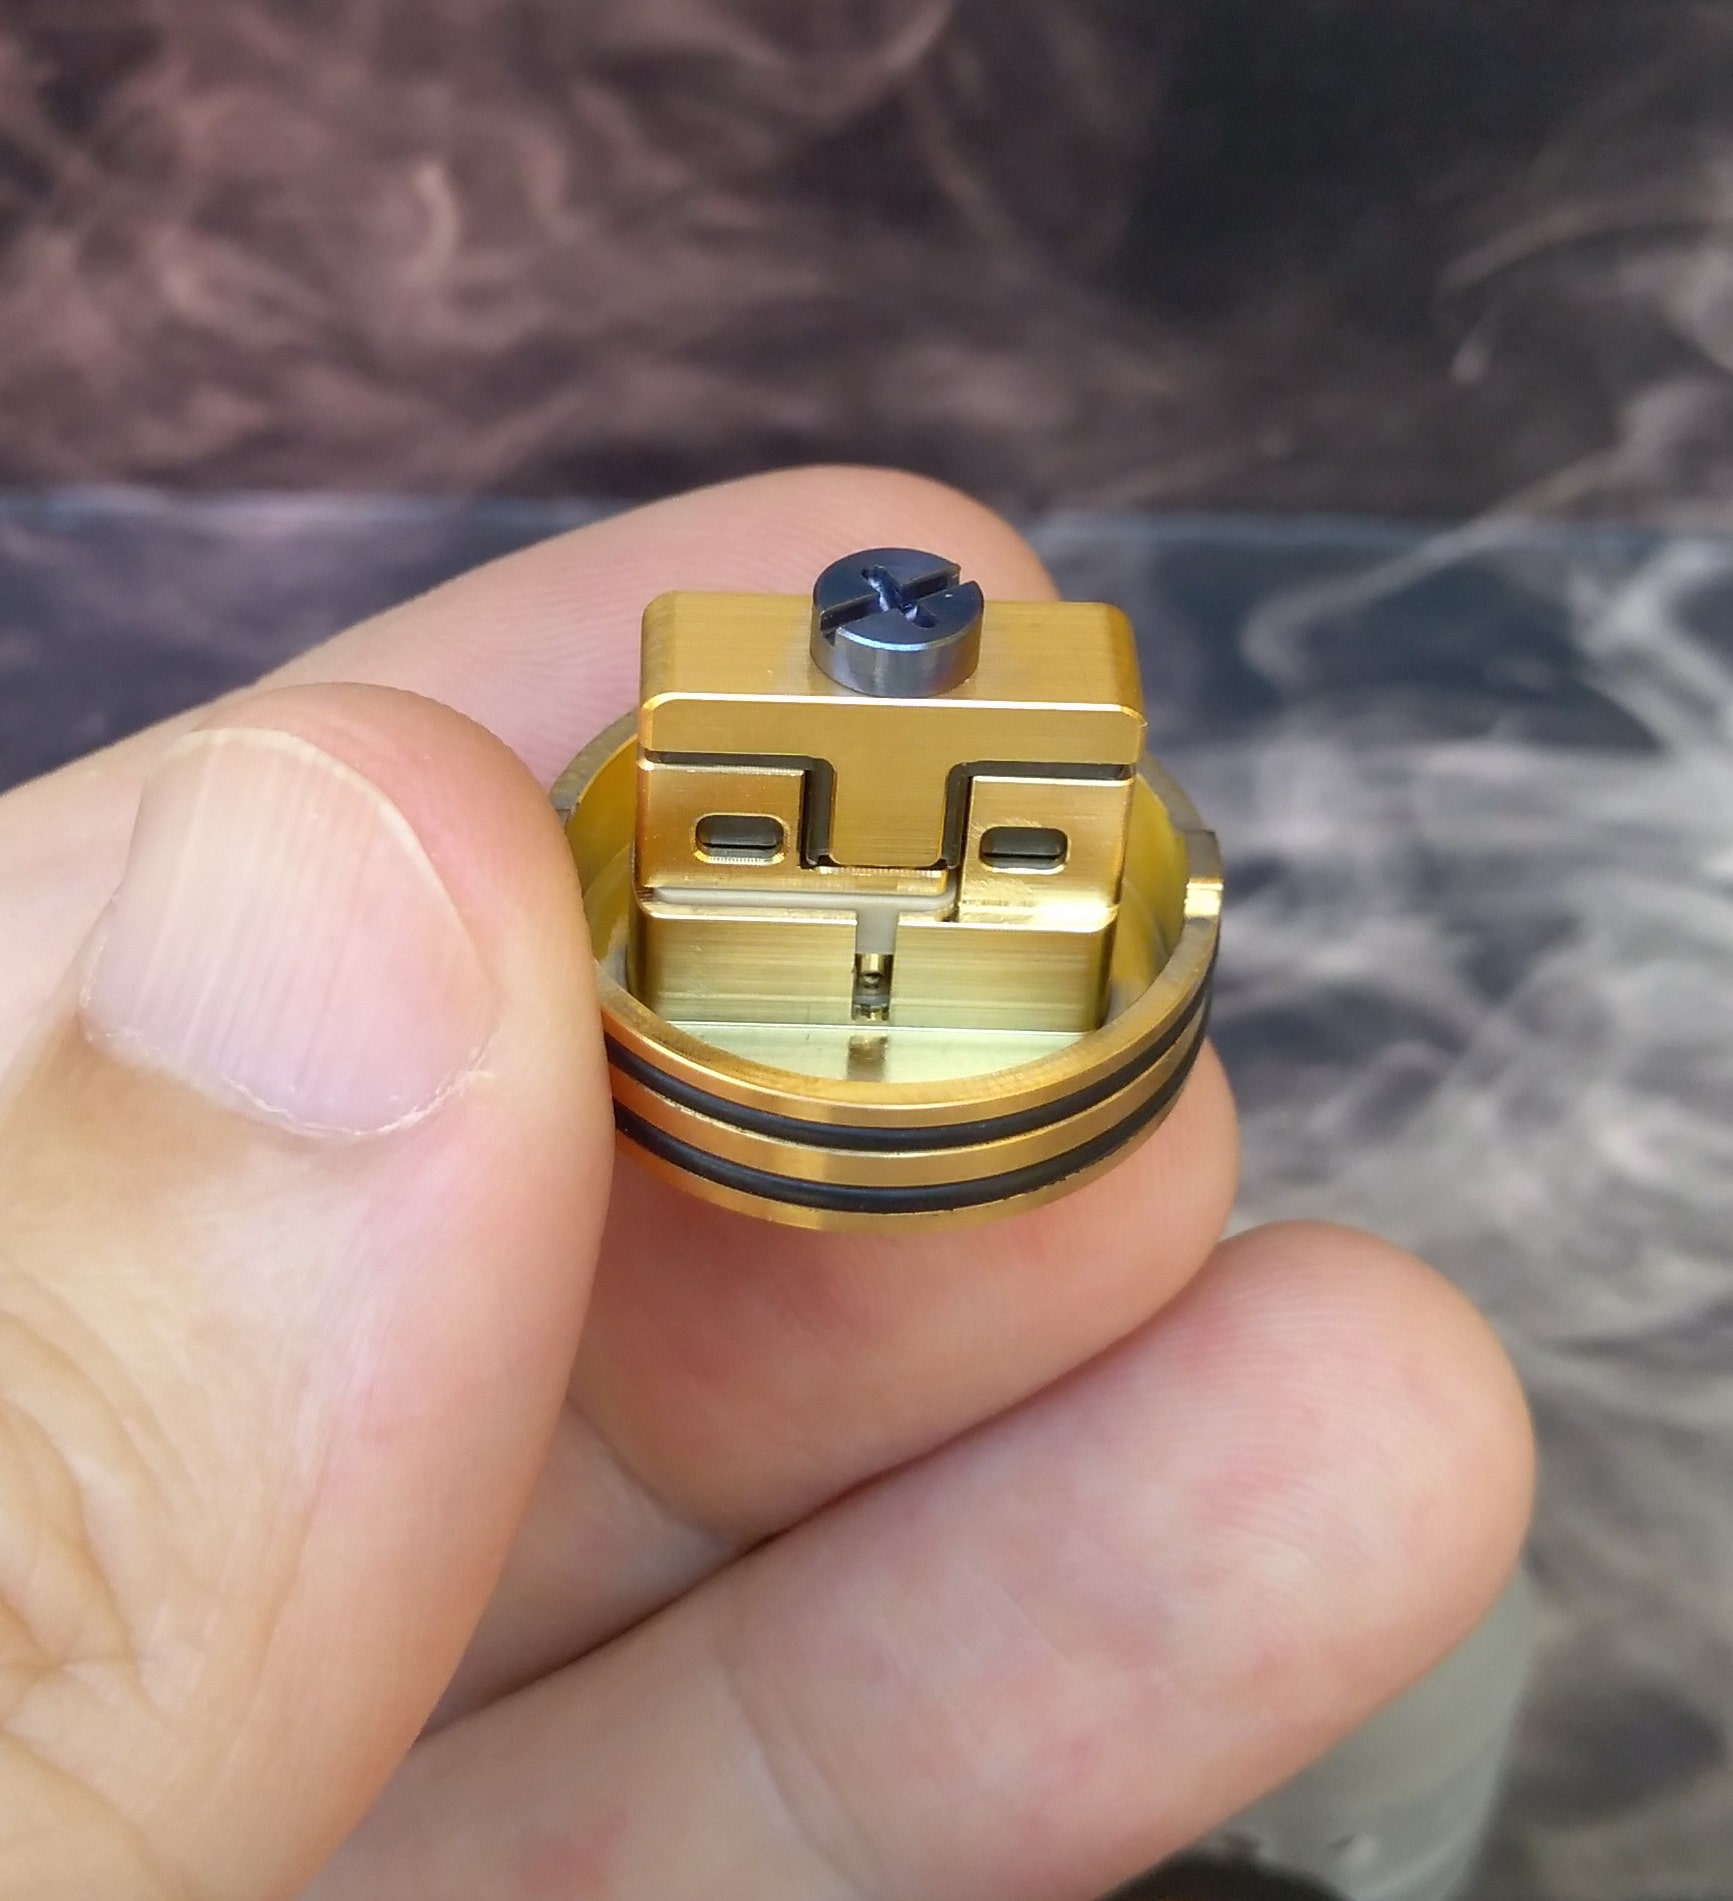 My version has a nice matte black aluminum anodized top cap. Both finishes have a solid quality 810 drip tip, a 24K gold-plated build deck and a superb quality clamp snag one piece coil post. Both regular and the squonk pin are gold plated brass and the extra frosted bullet-shaped single piece top cap is PC.